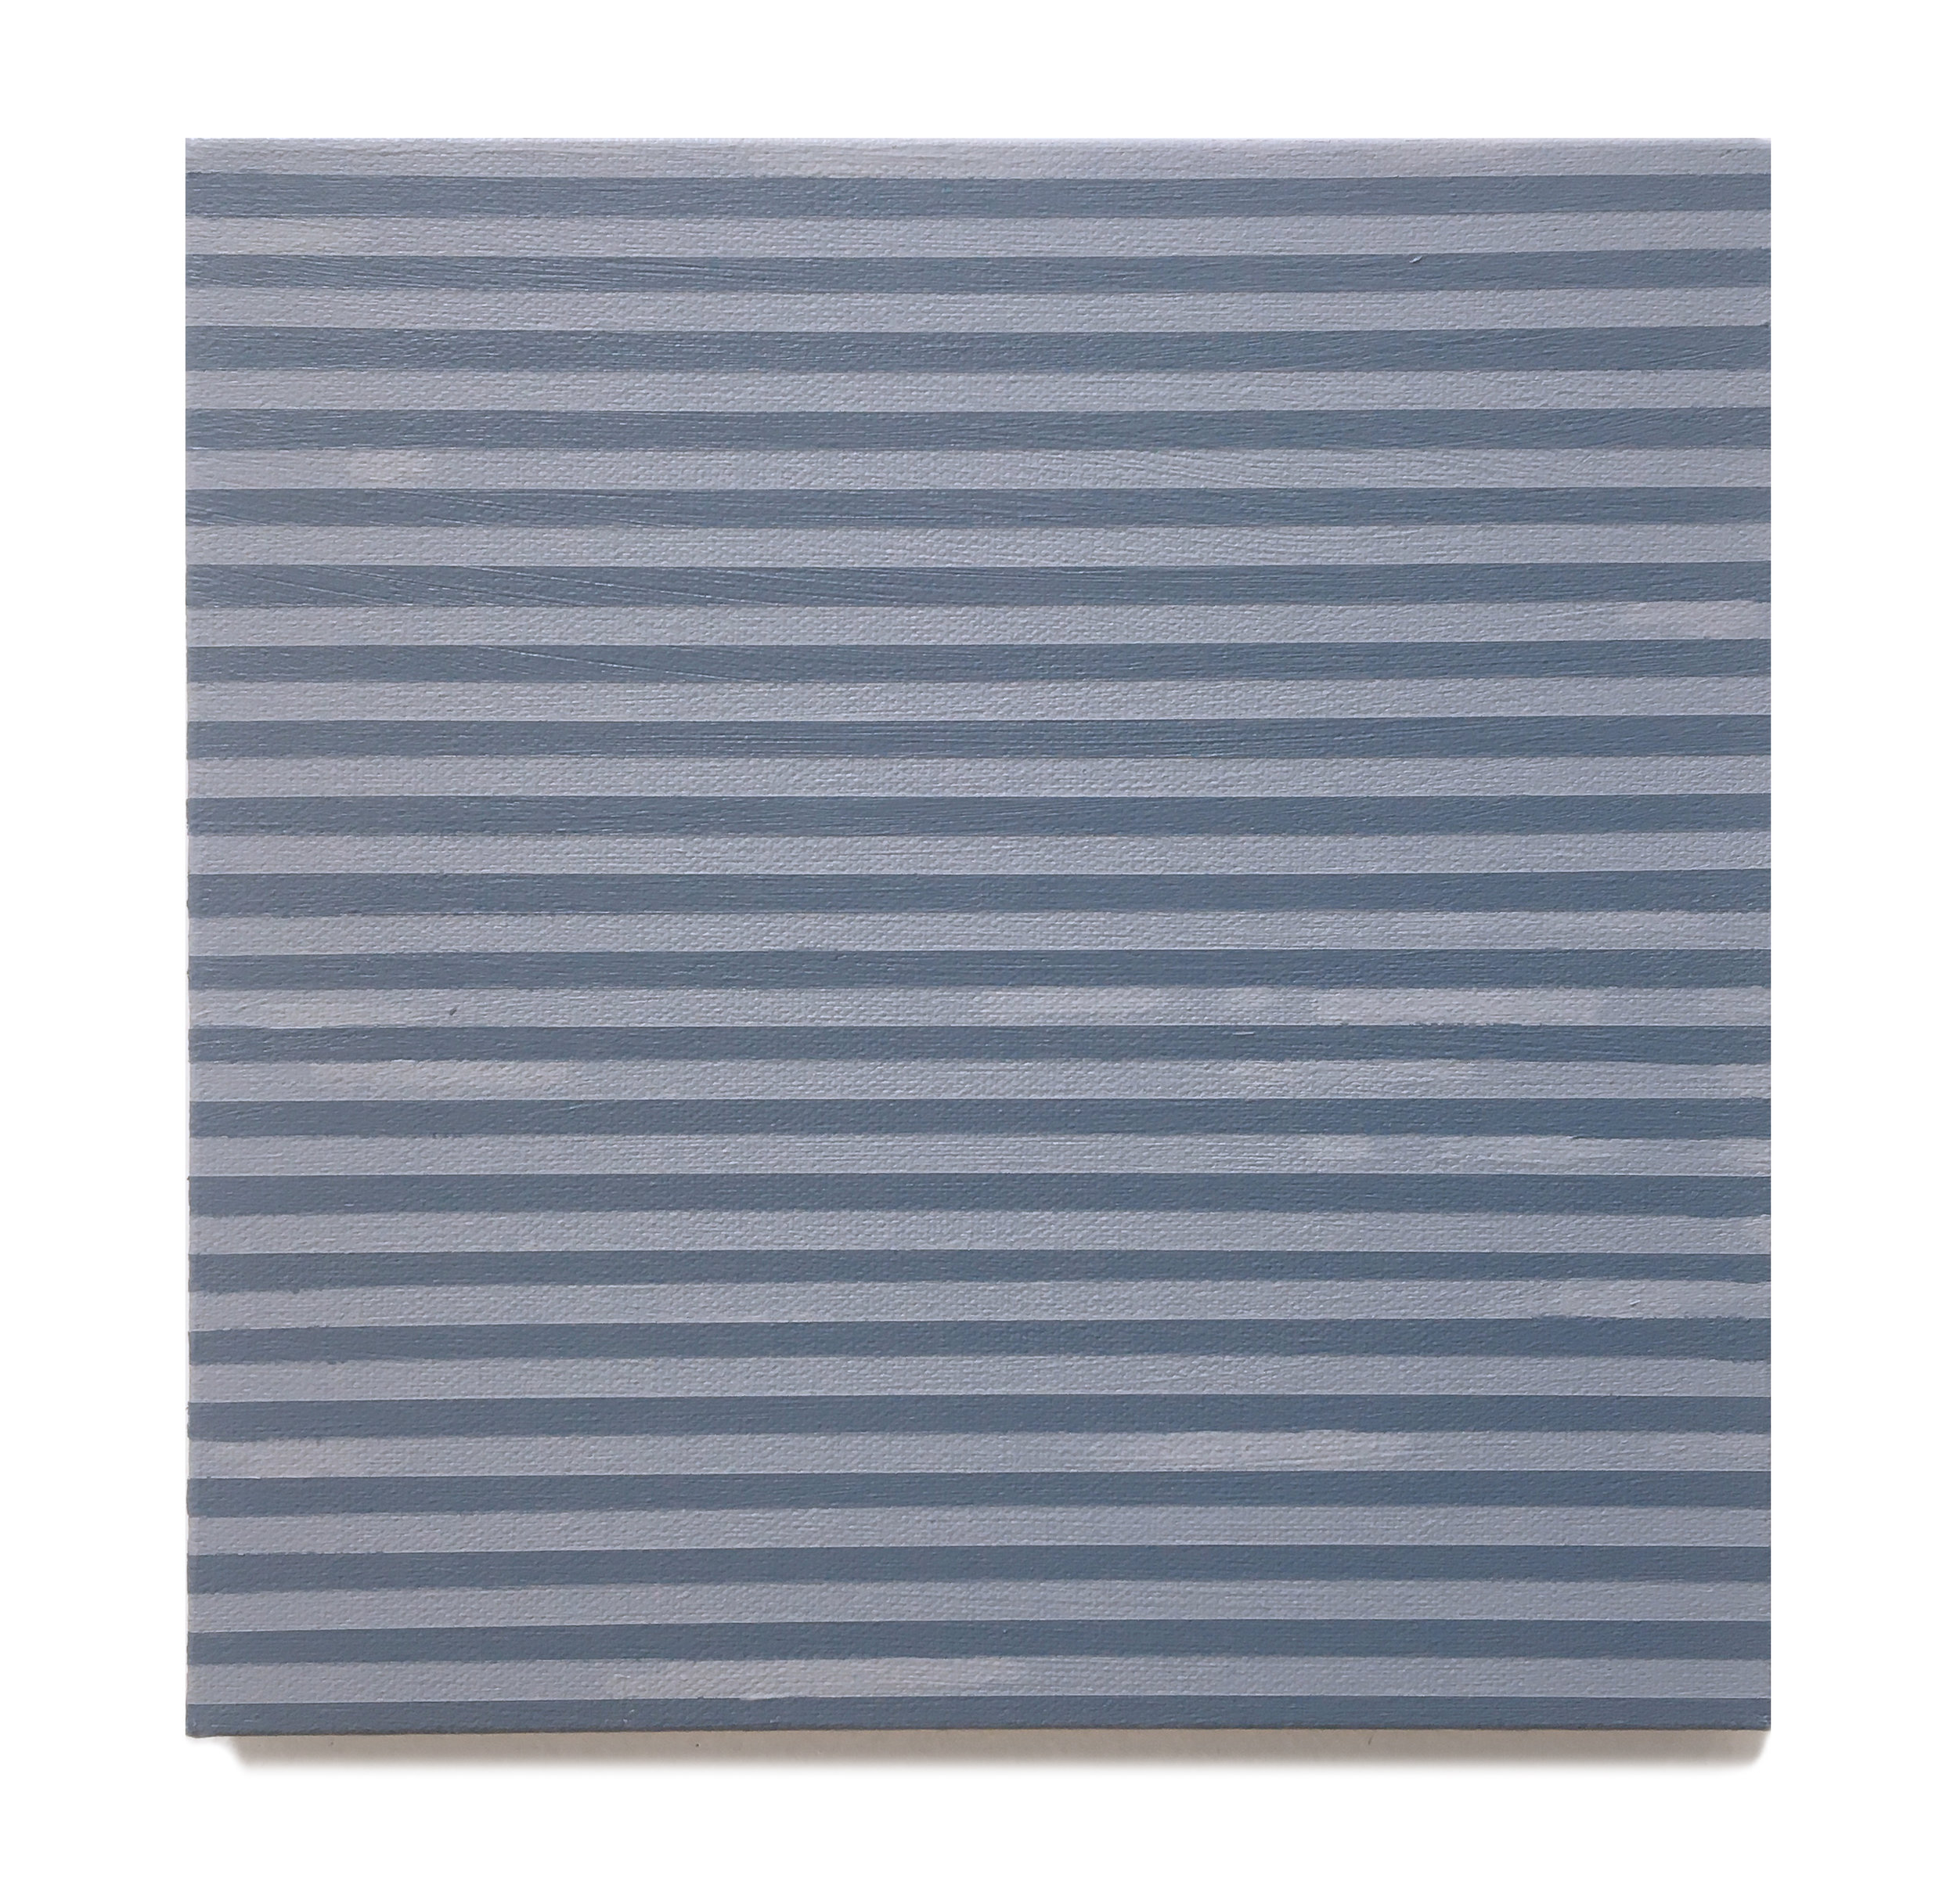 Agnes Martin, 2019,  Acrylic on canvas,  10 x 10 inches,  25.4 x 25.4 cm